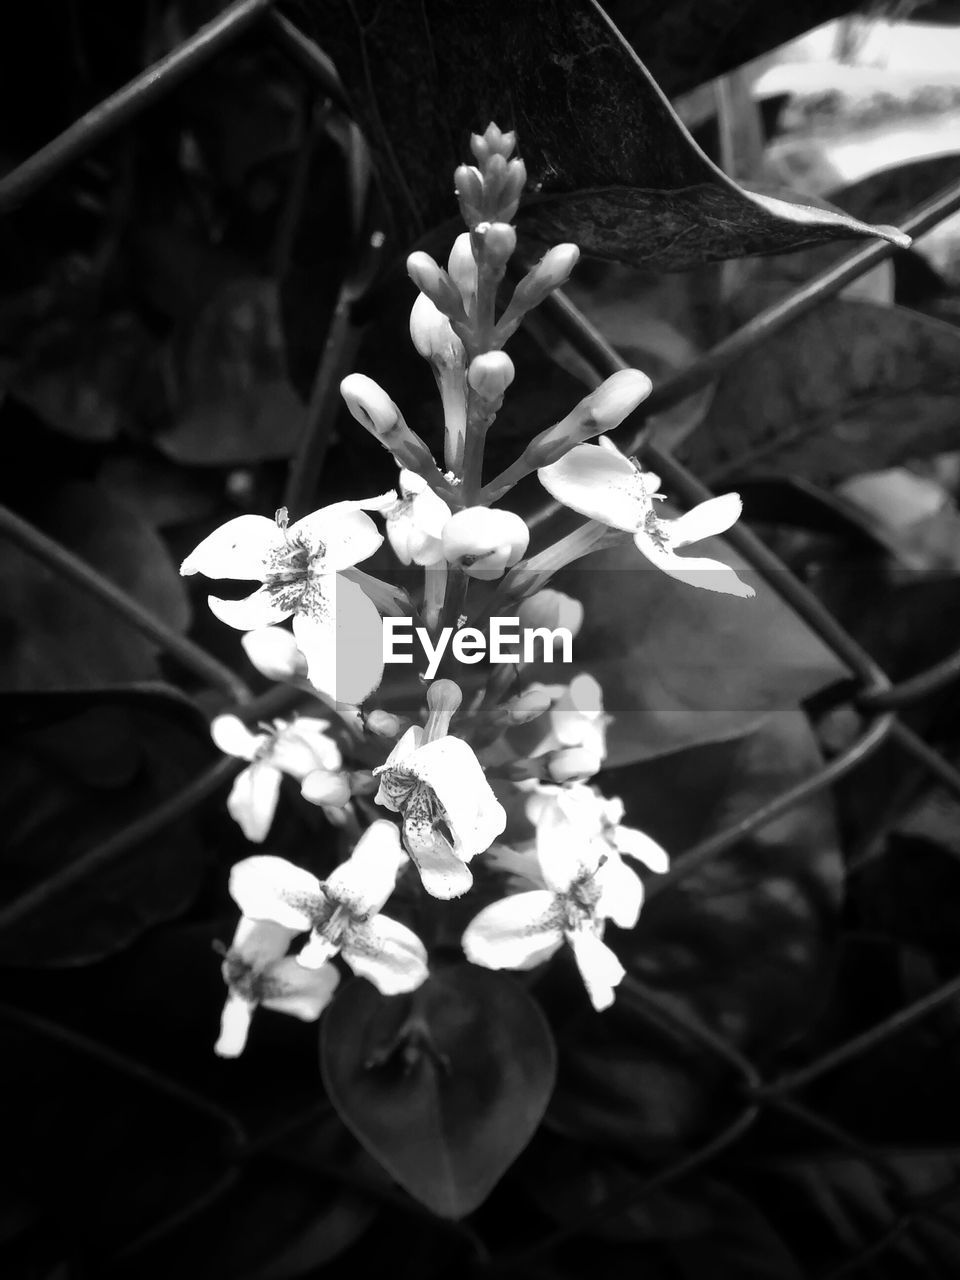 White Flower Growing Out Of Netting